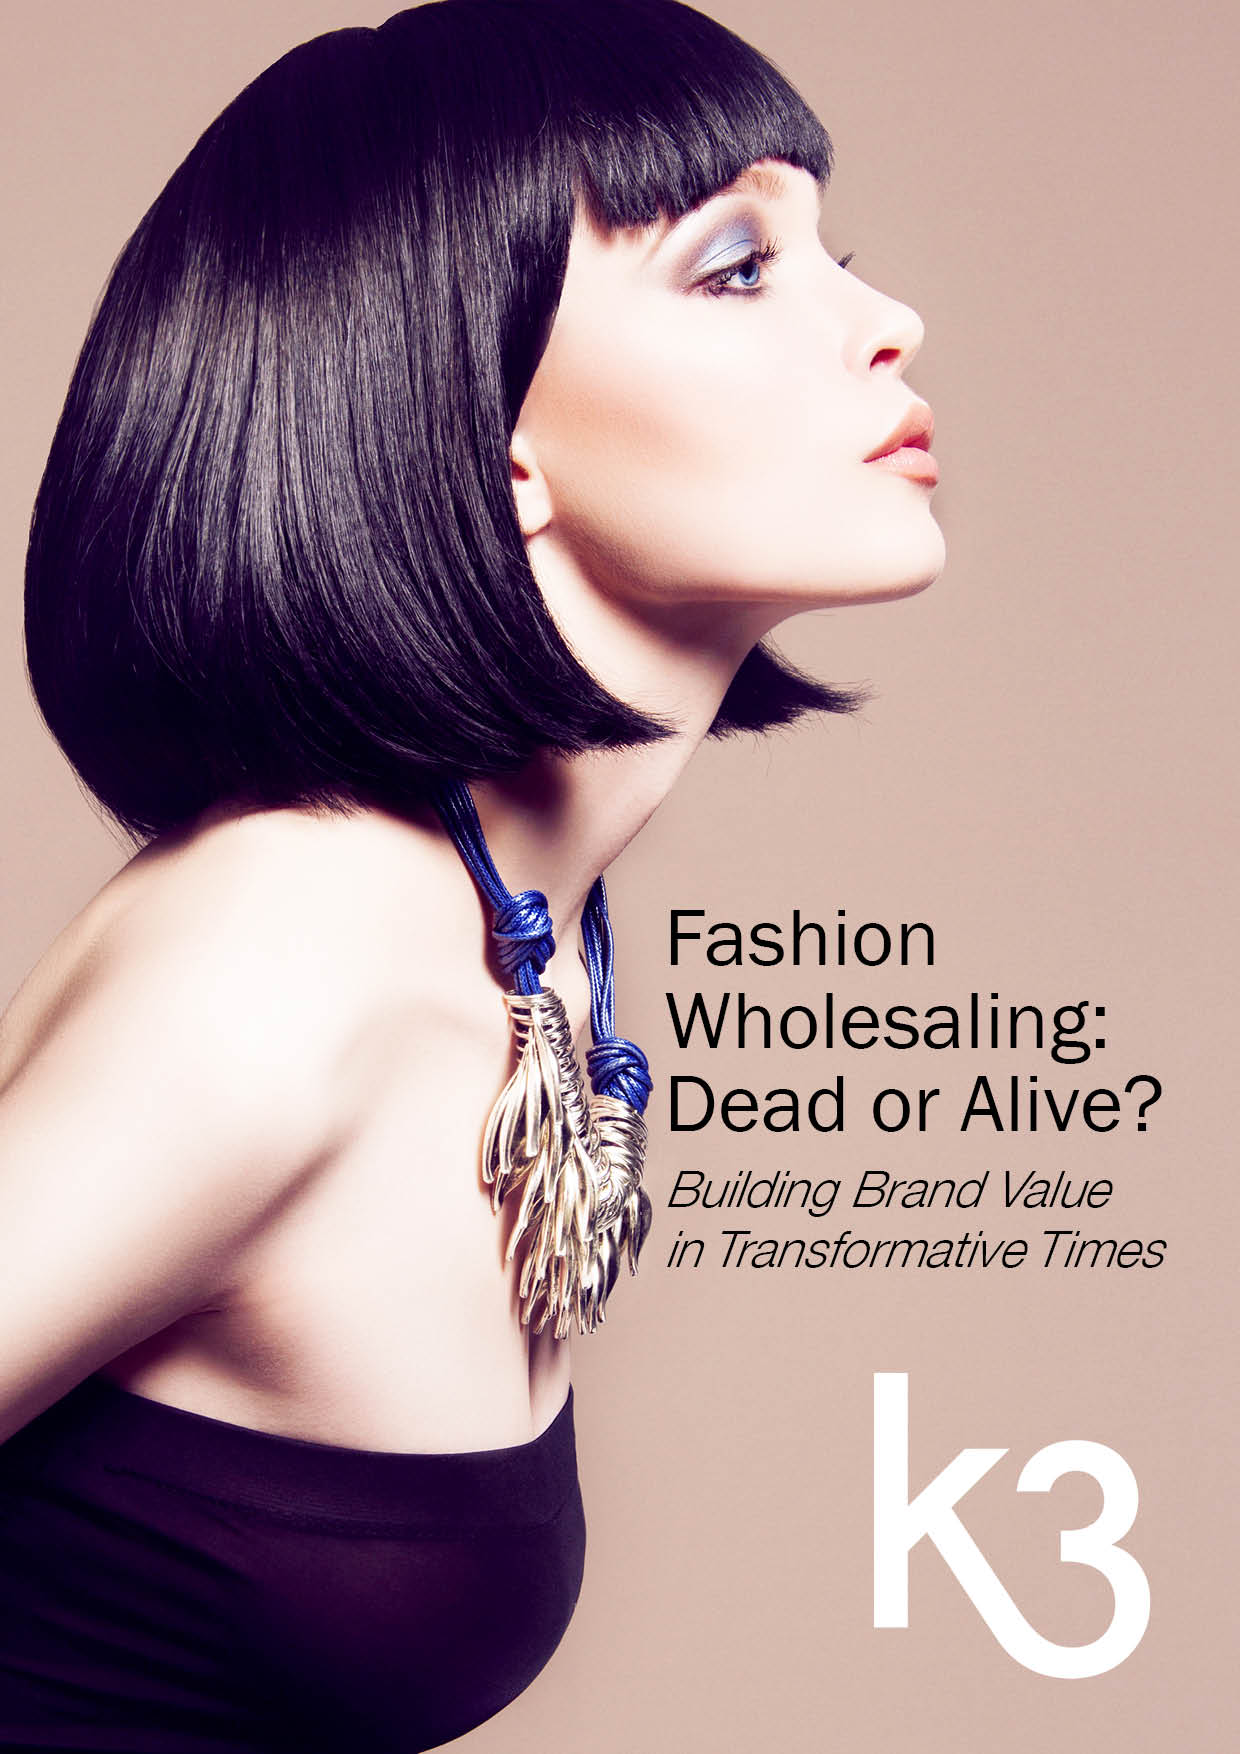 Fashion wholesaling - dead or alive